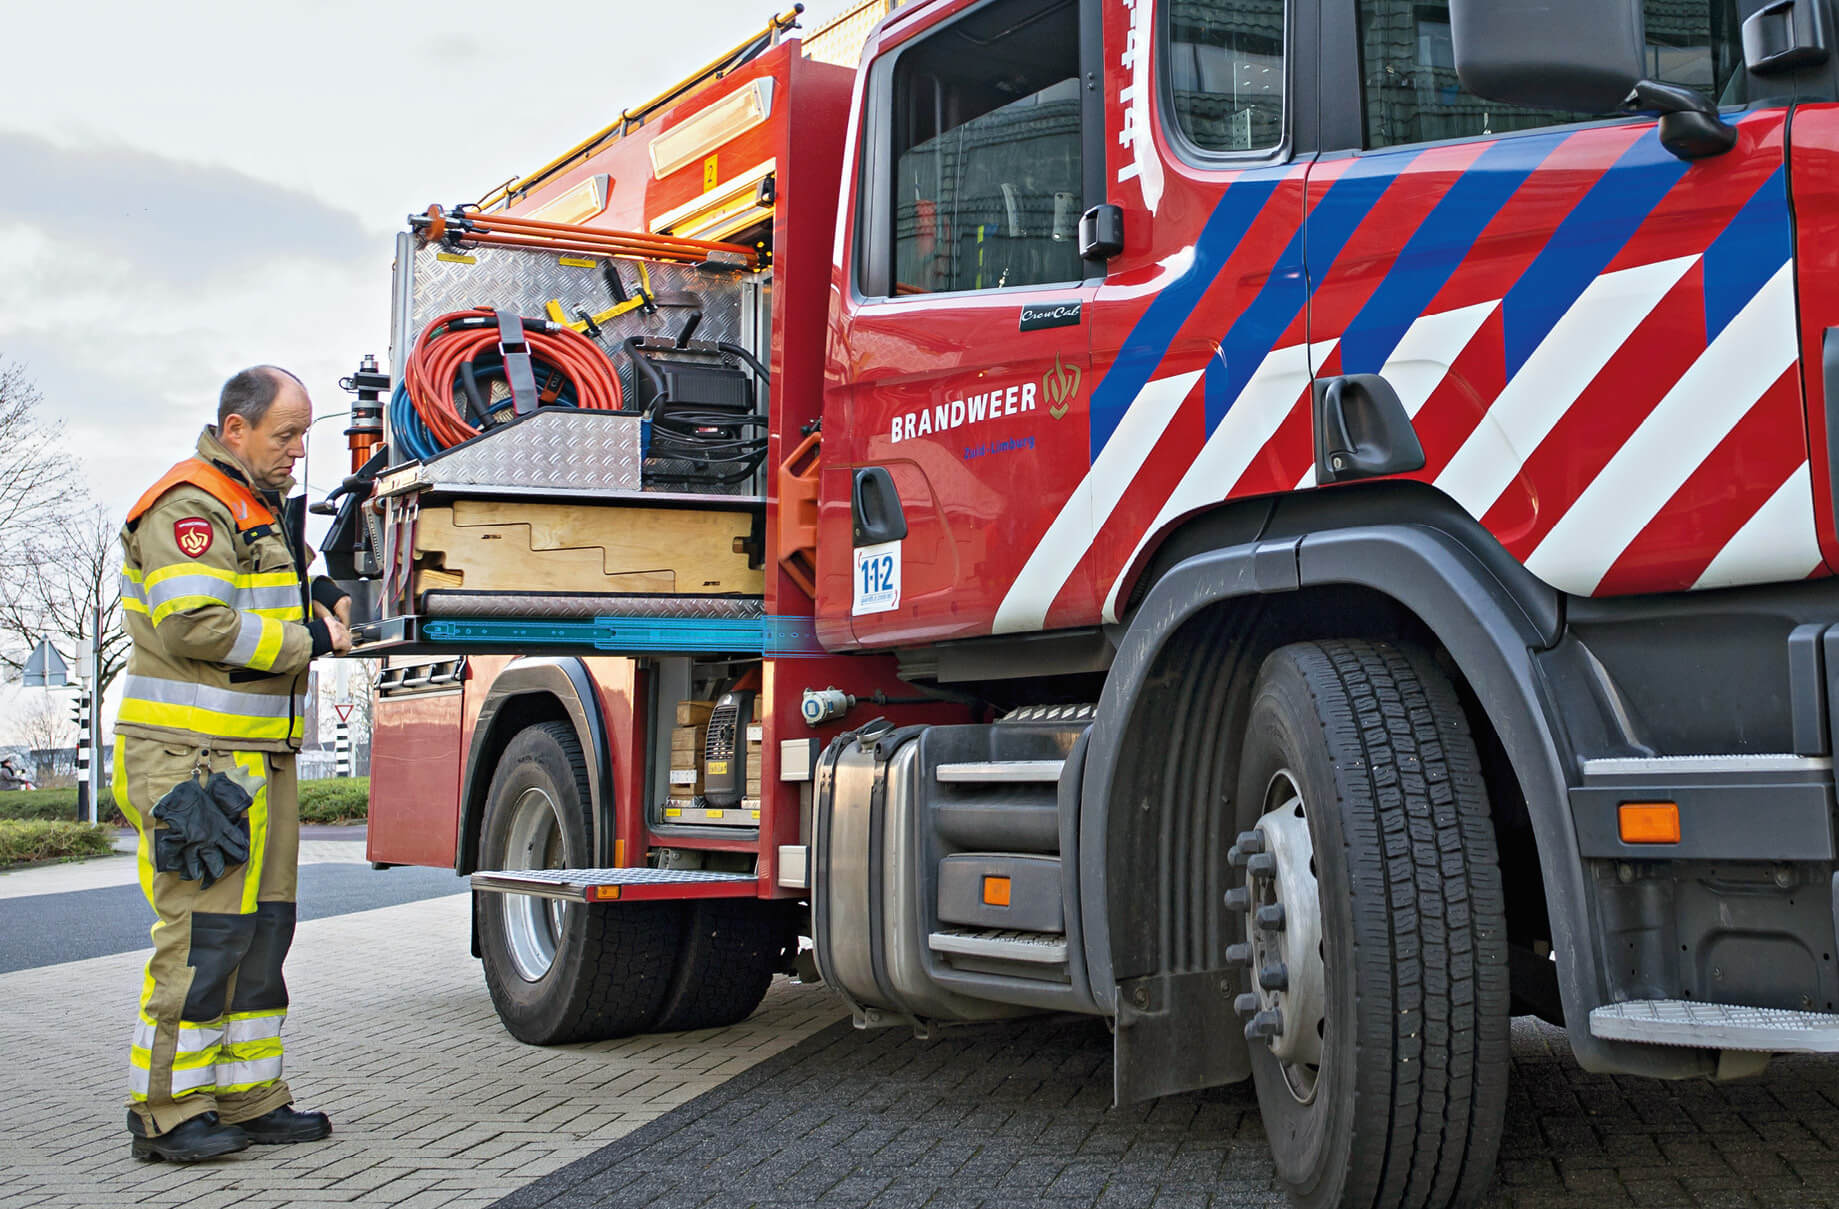 Emergency service vehicles – Customised telescopic rails make it easy for emergency service workers to lay their hands on the materials they need.